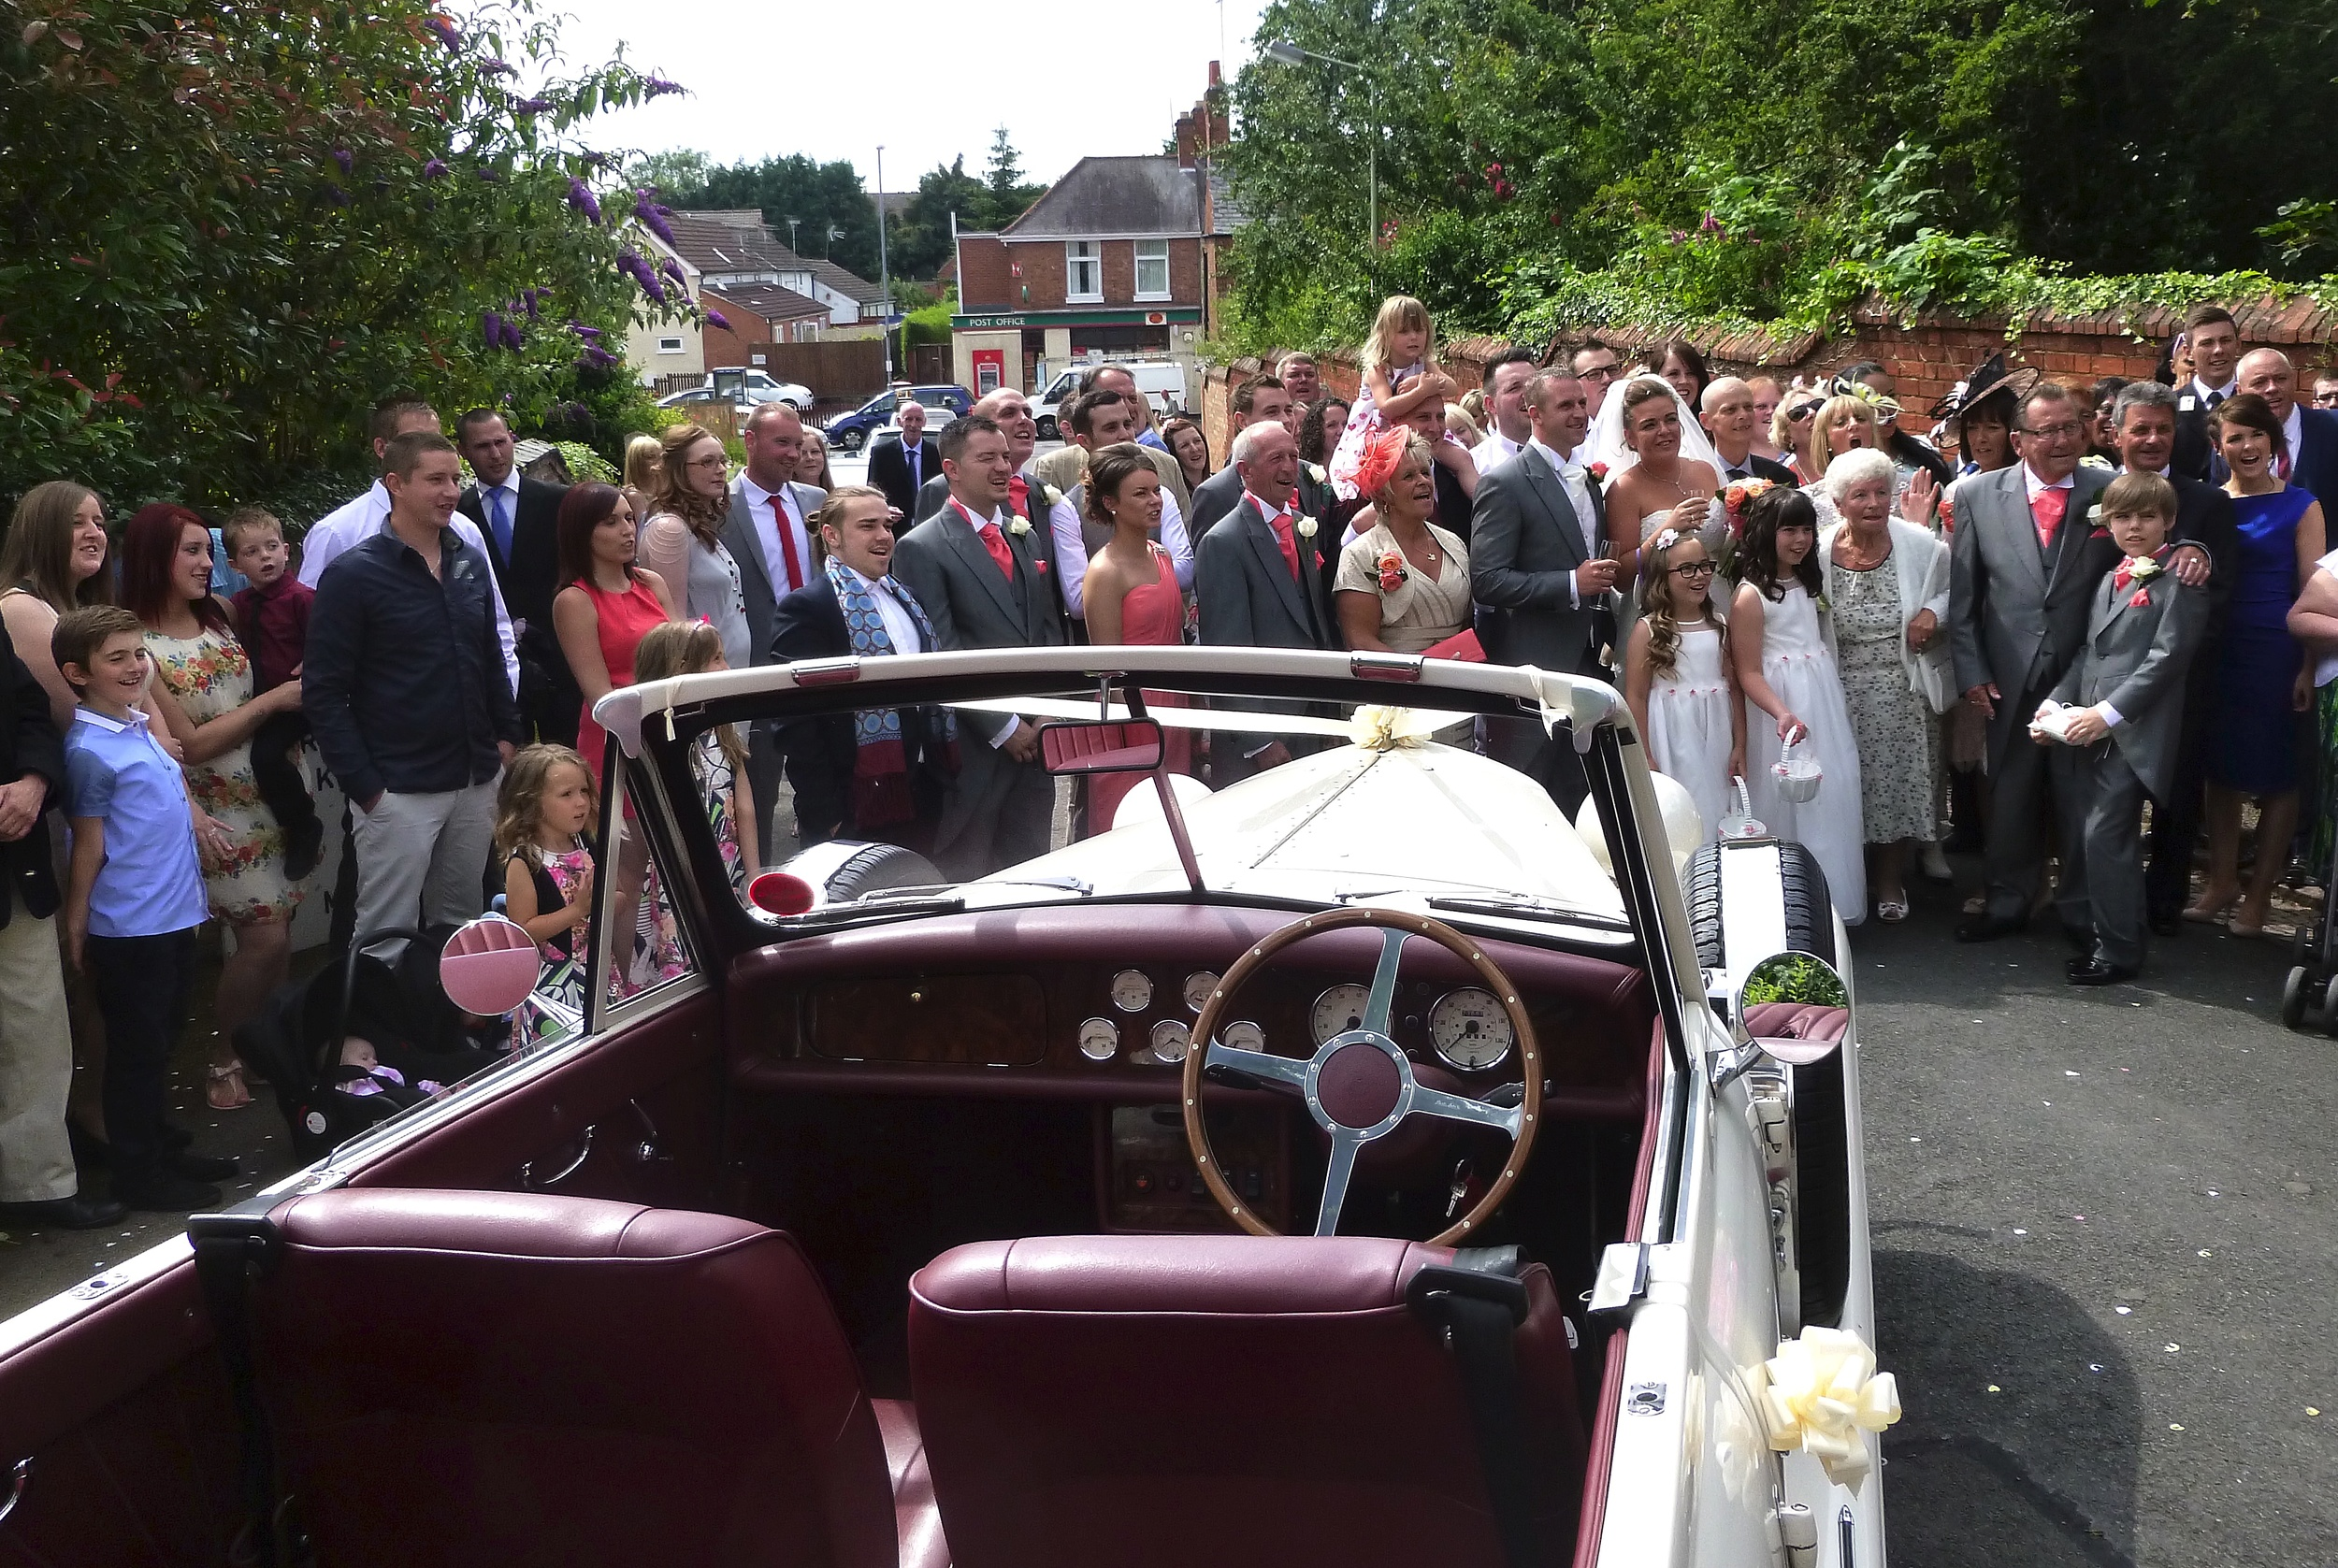 Time for the group photo and then off on a gentle drive through the village of Whetstone to the reception a few miles away in Braunstone.